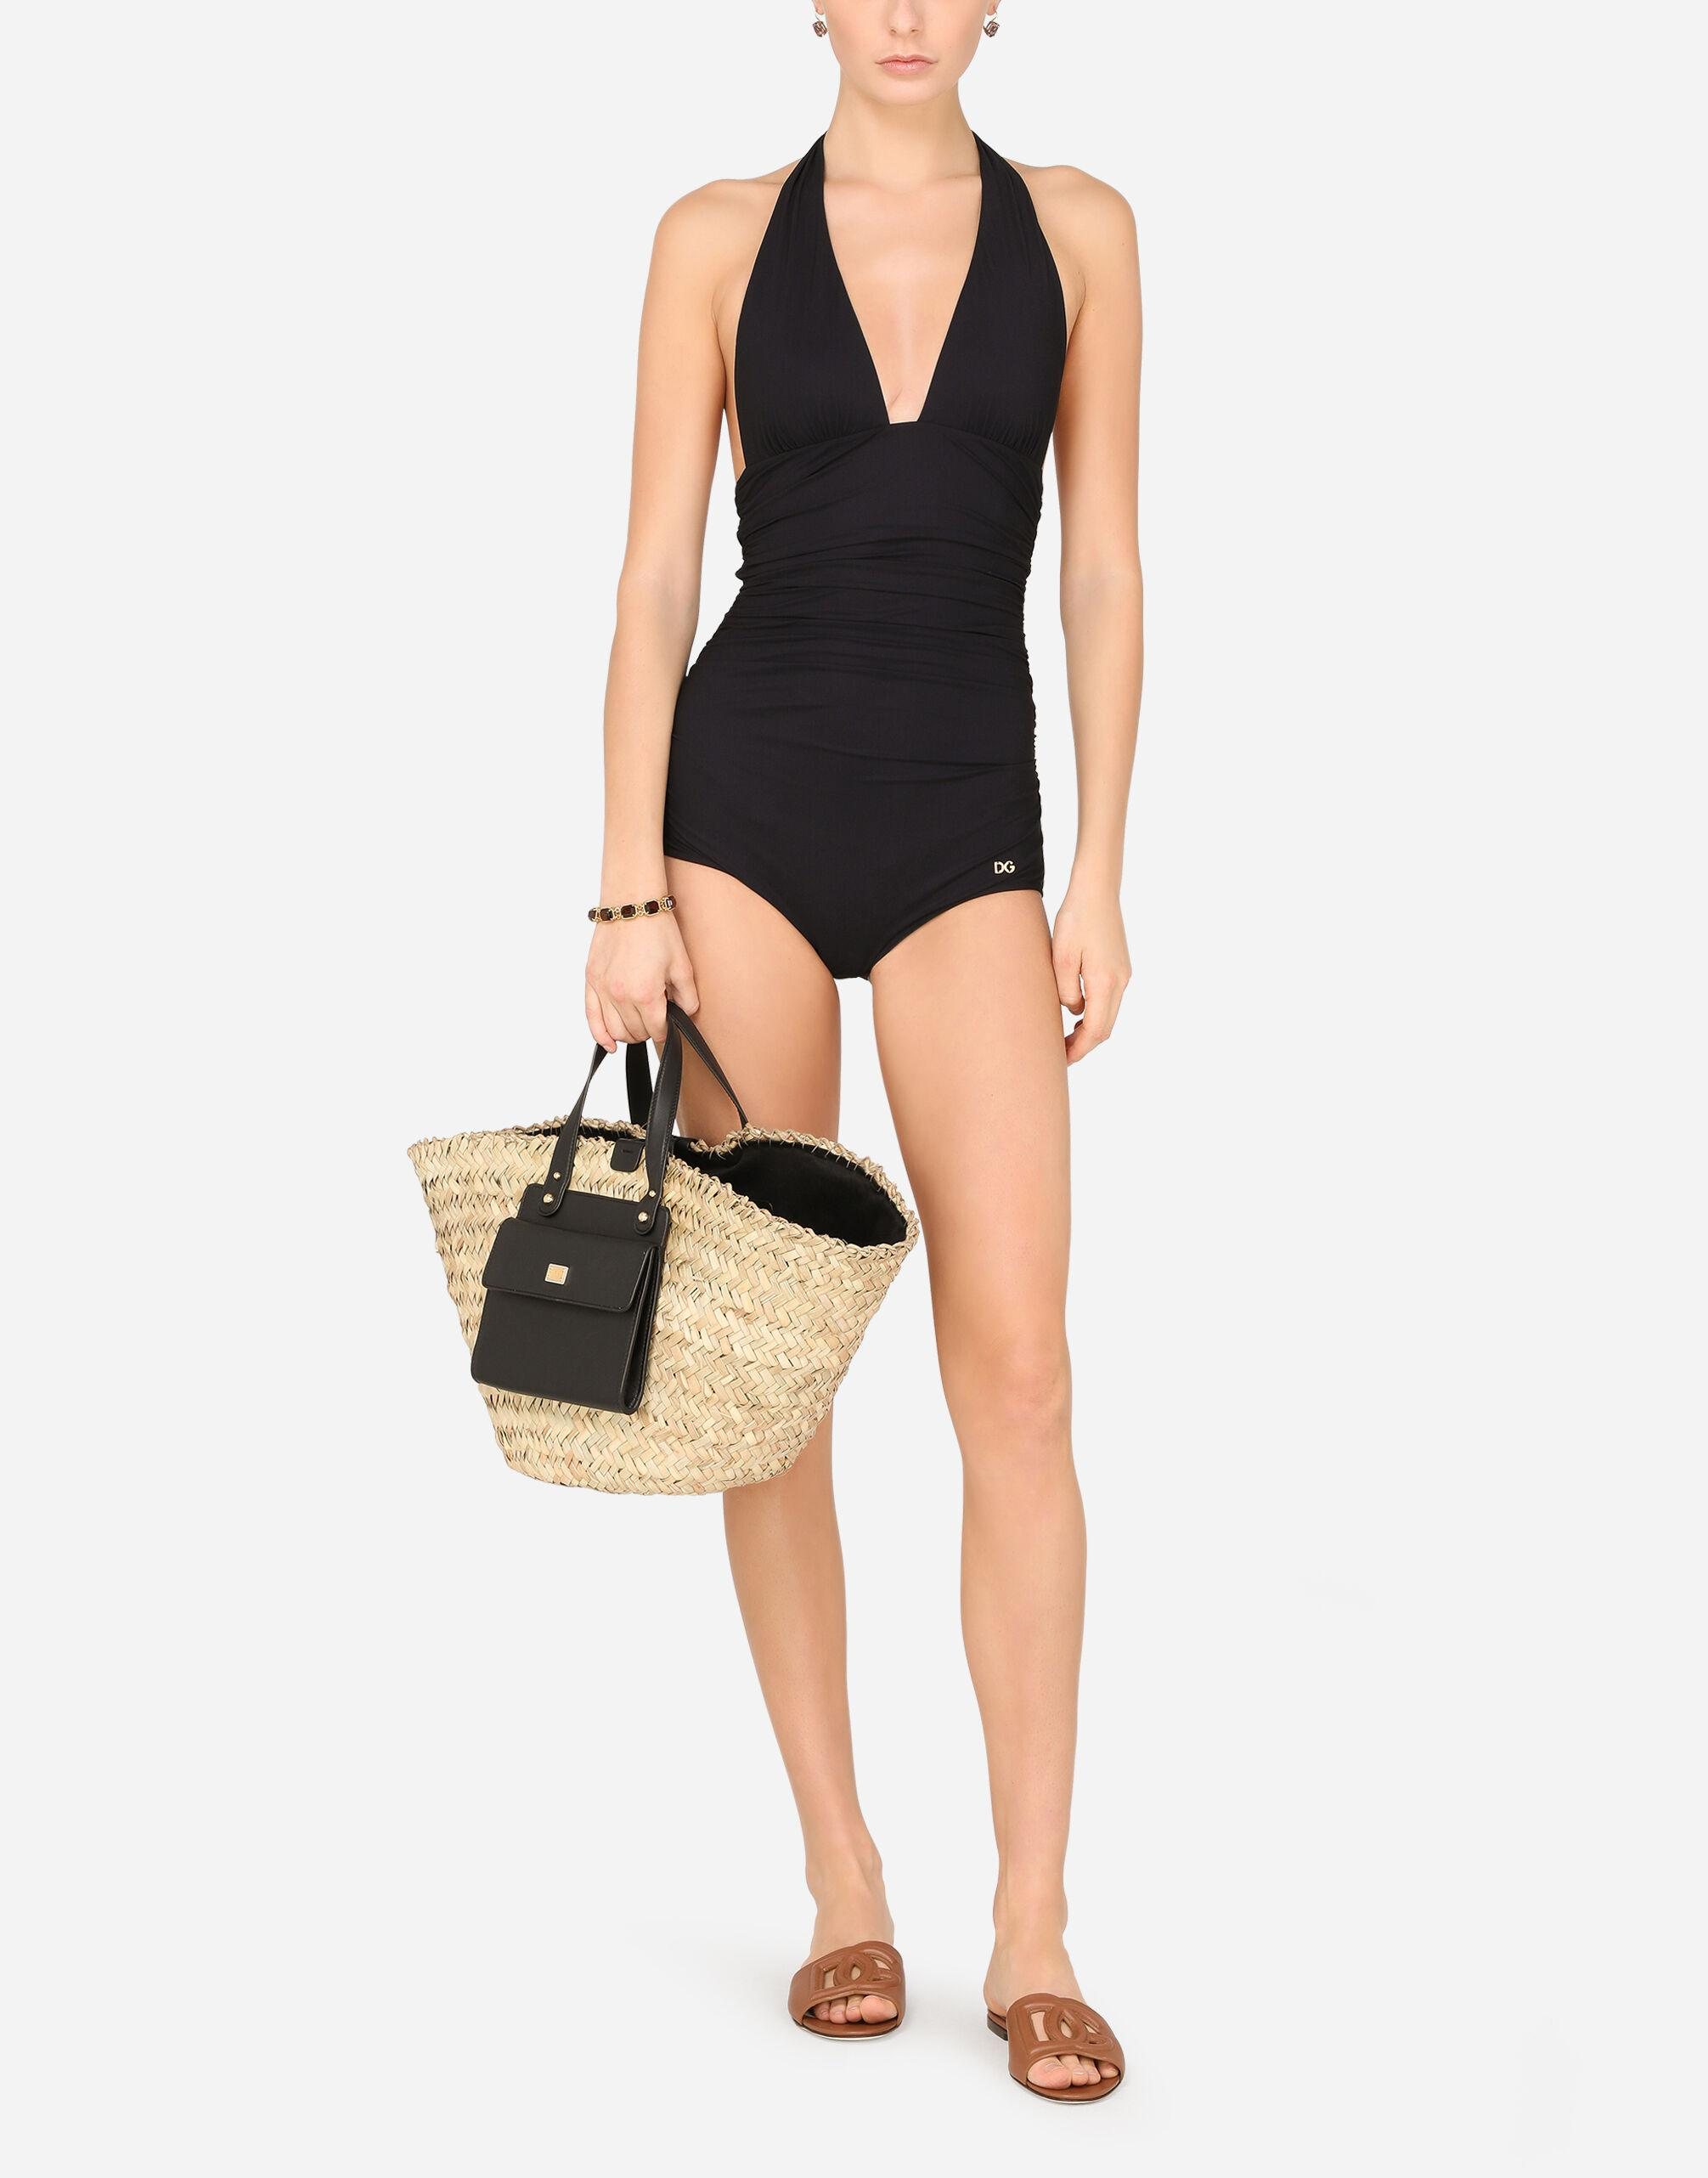 One-piece swimsuit with plunging neckline